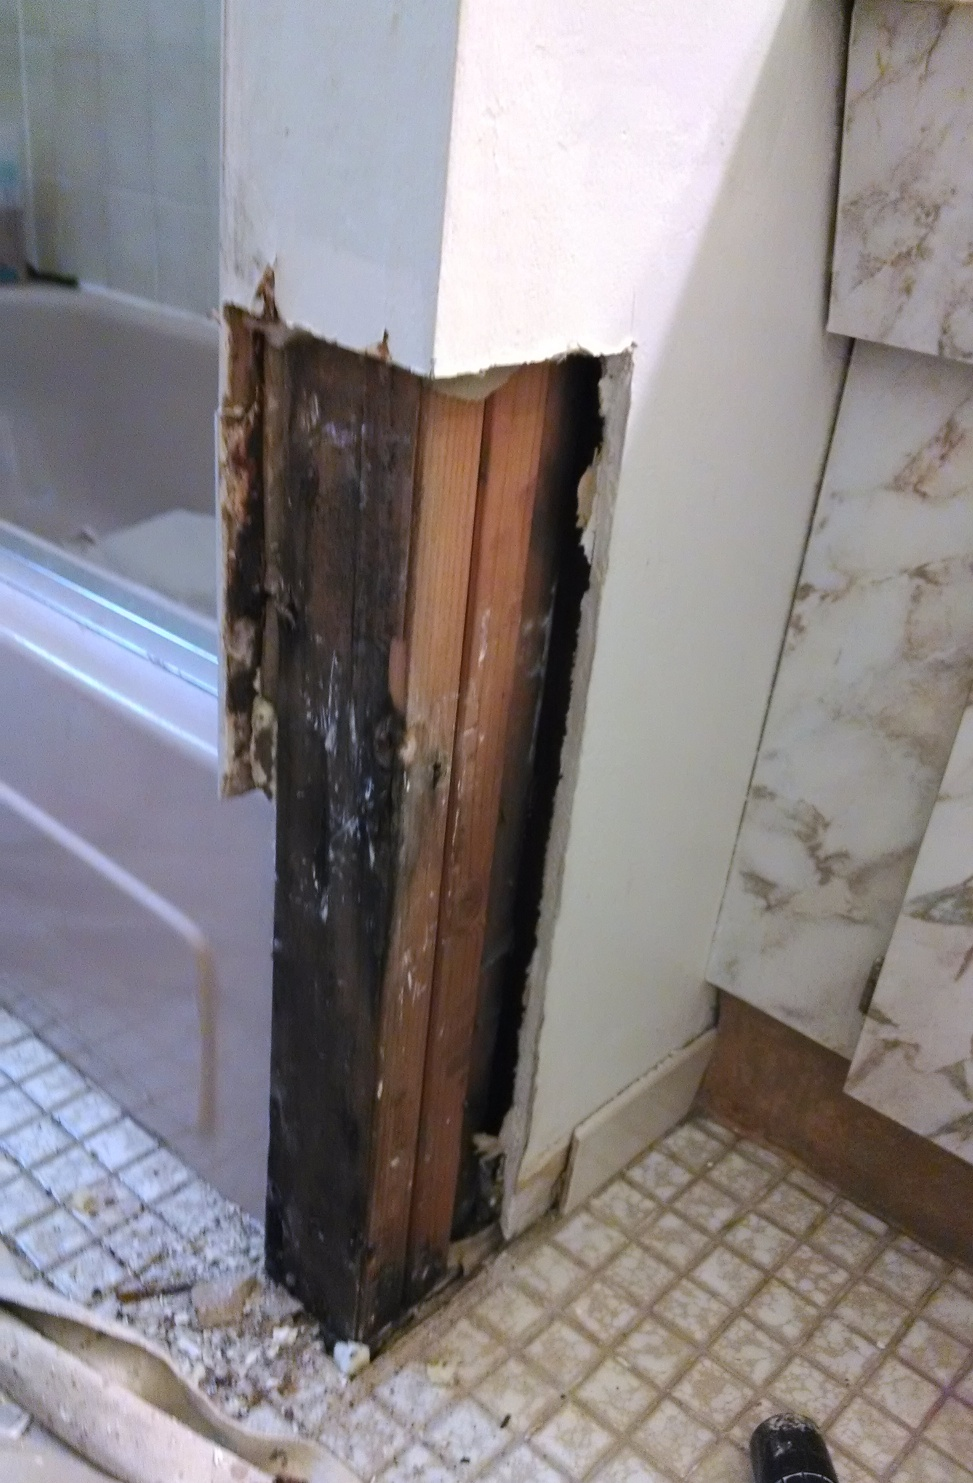 Pictures Of Mold In The Home - Surface mold in bathroom